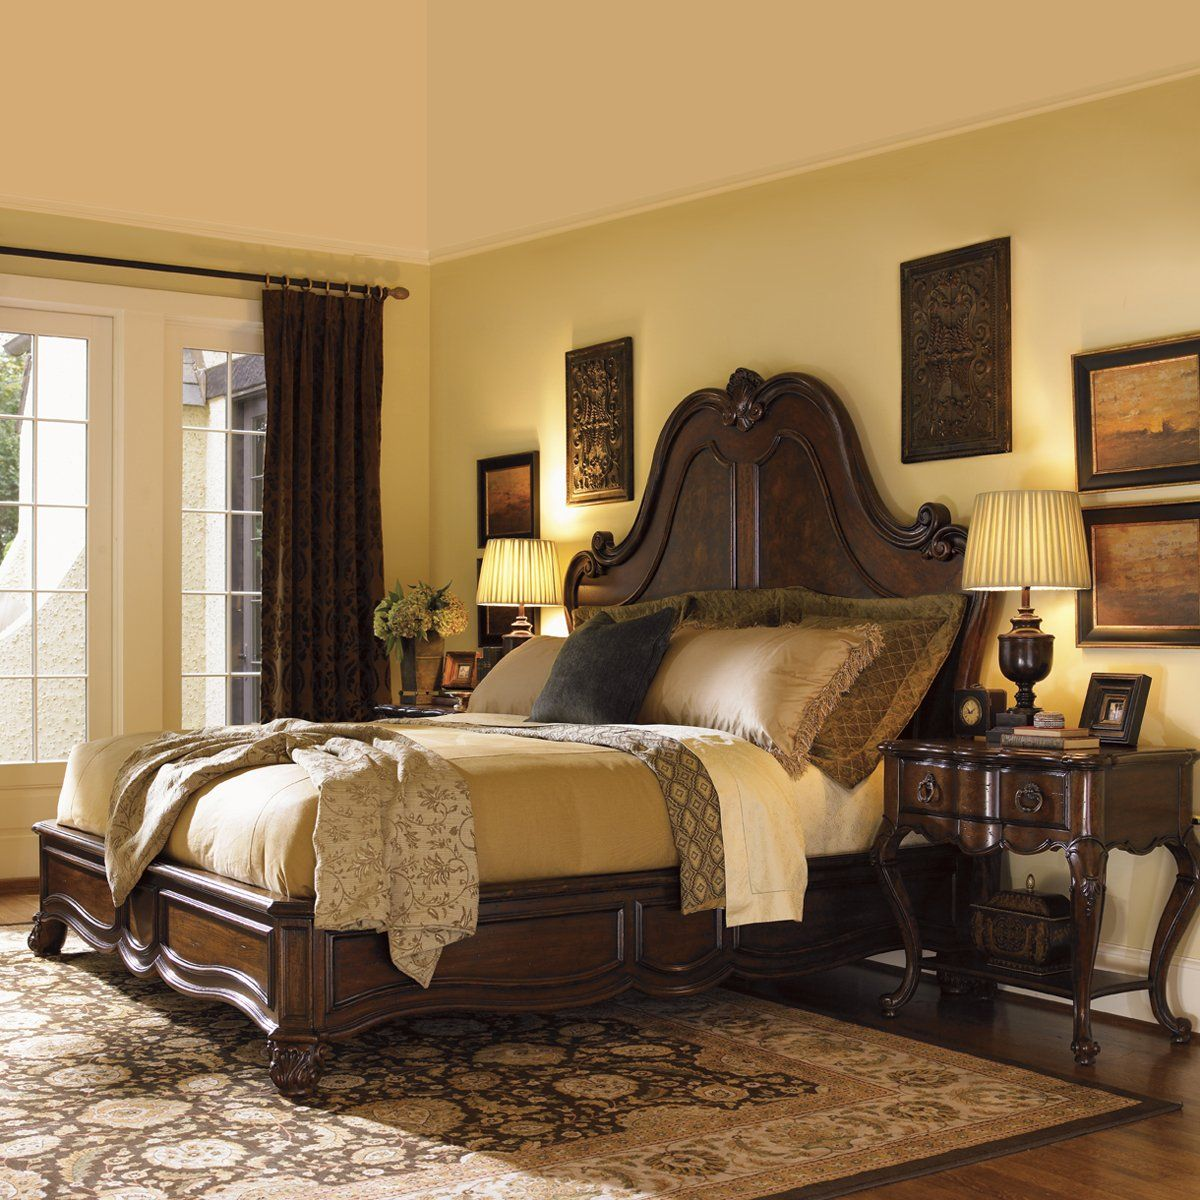 Lexington Bedroom Sets Mesmerizing Lexington Home Brands Palos Verdes Grande Salon Bedroom Set Decorating Inspiration